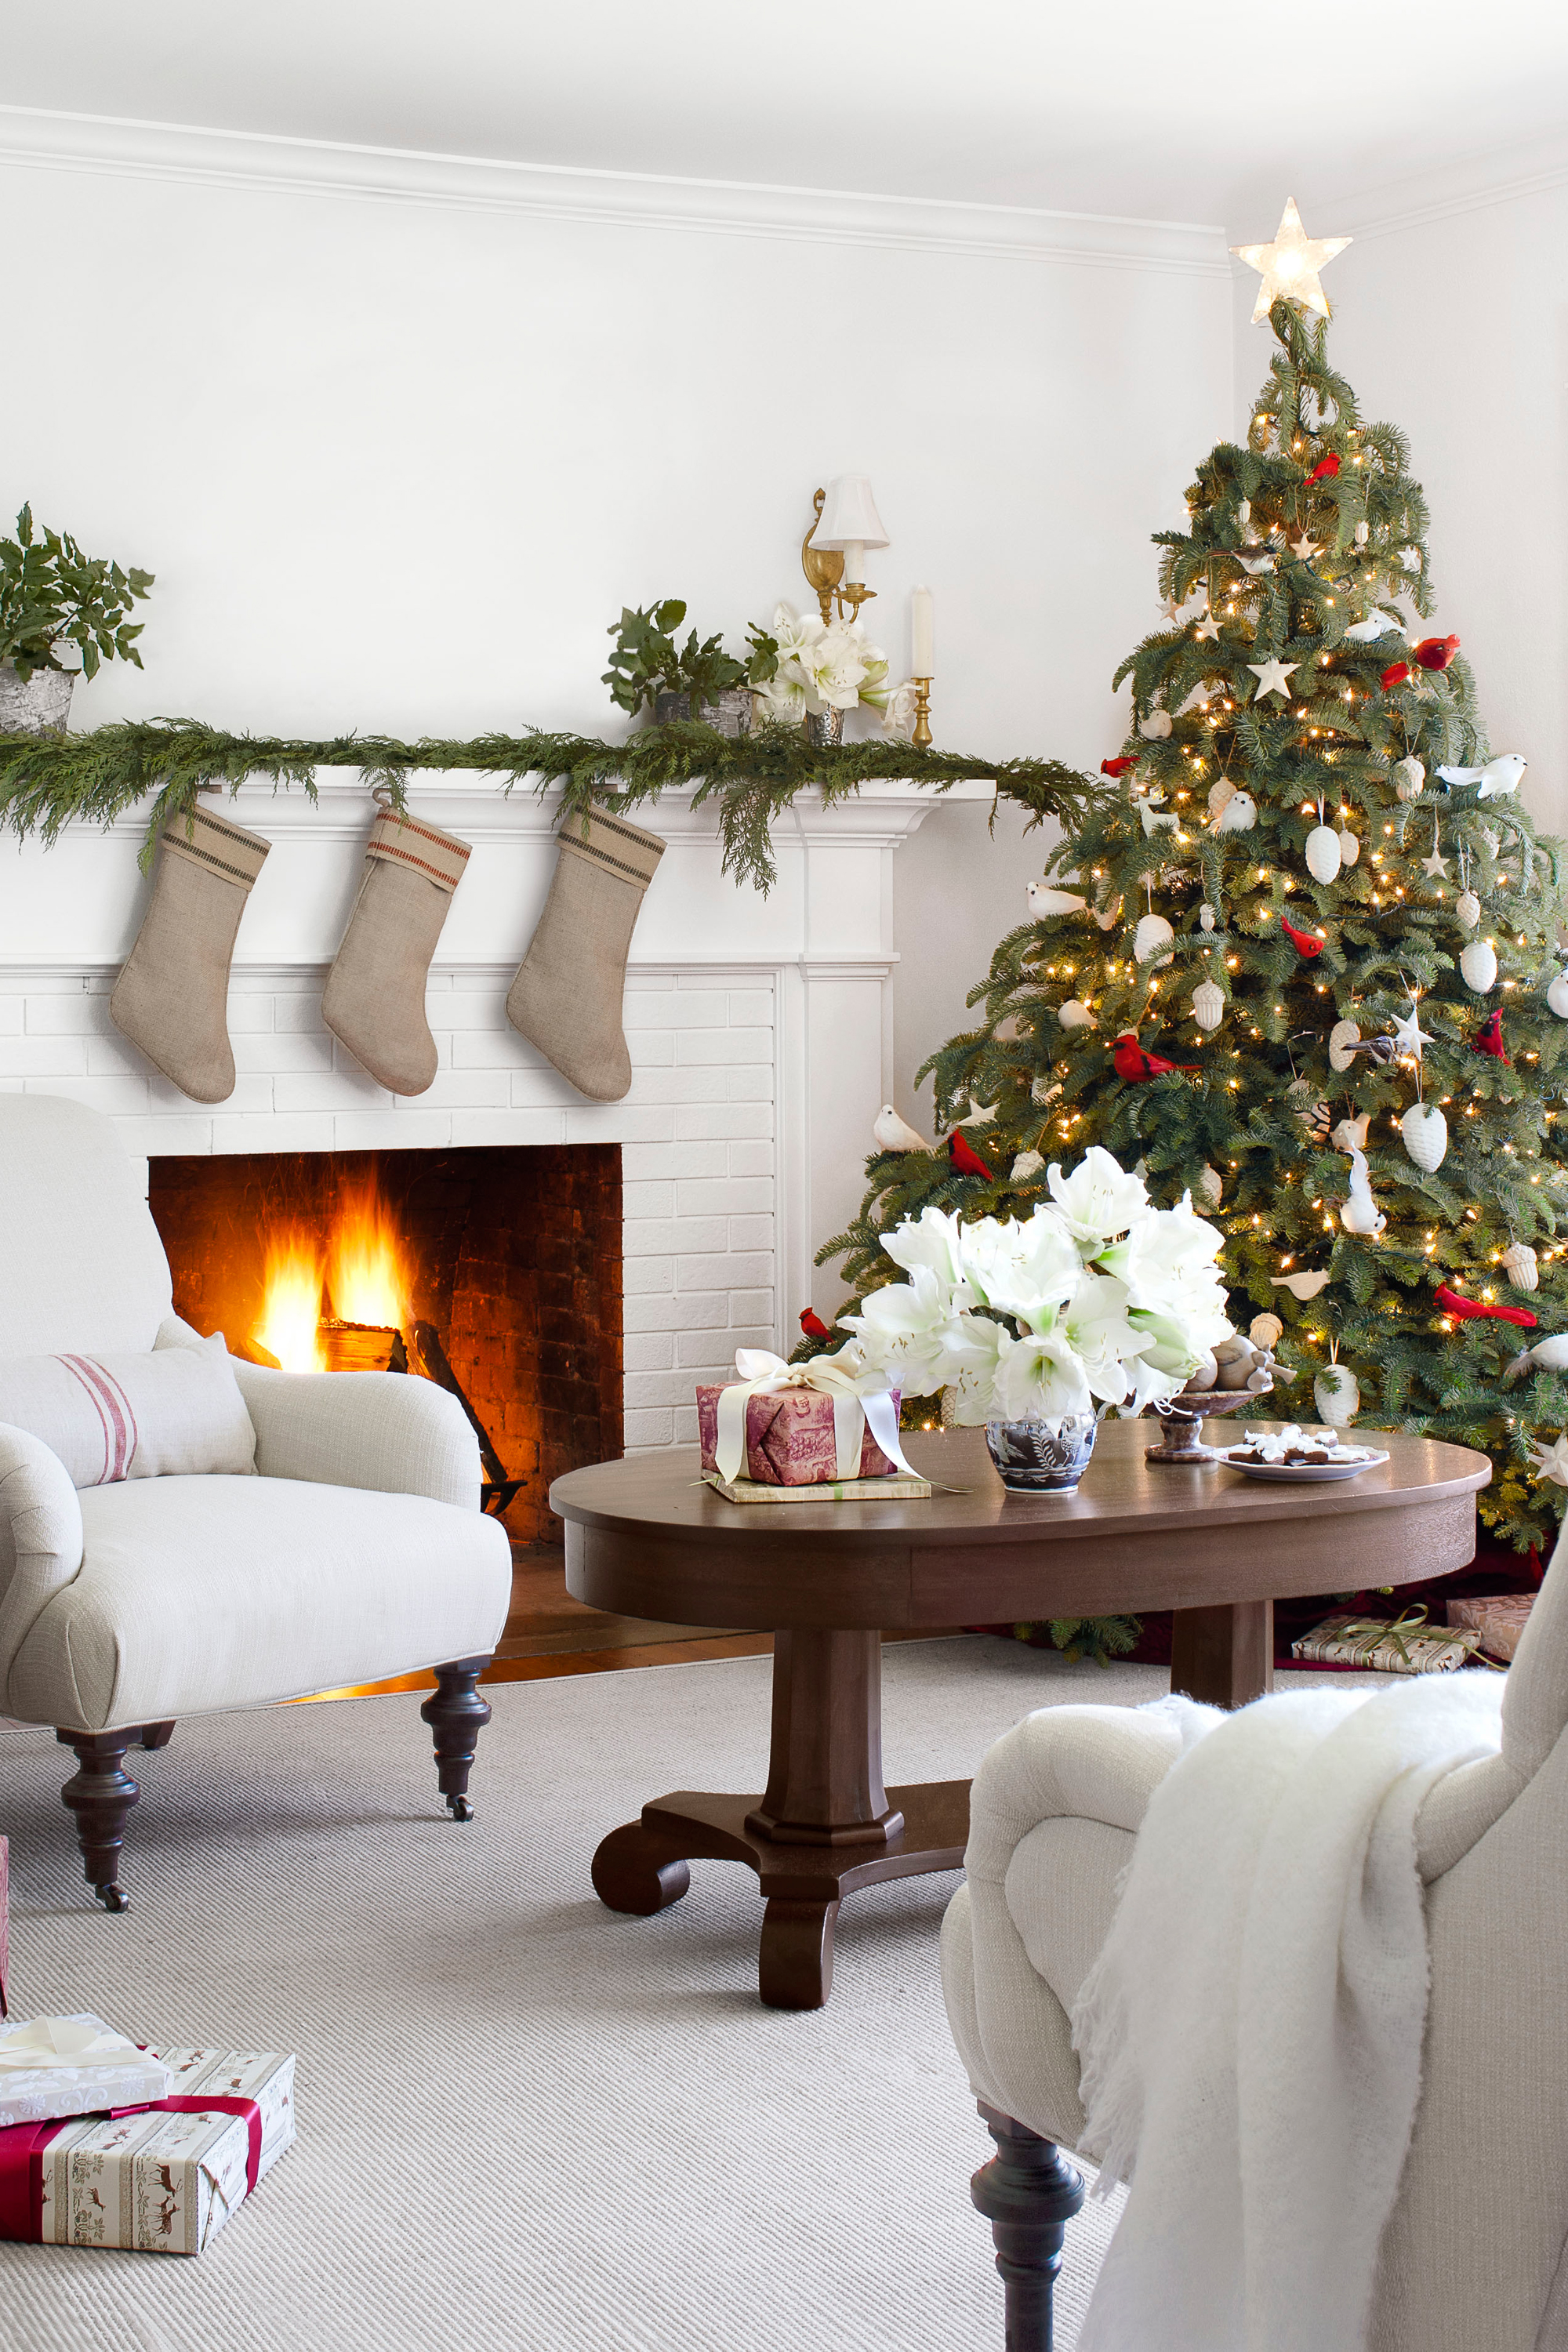 35 Christmas Mantel Decorations   Ideas For Holiday Fireplace Mantel  Decorating